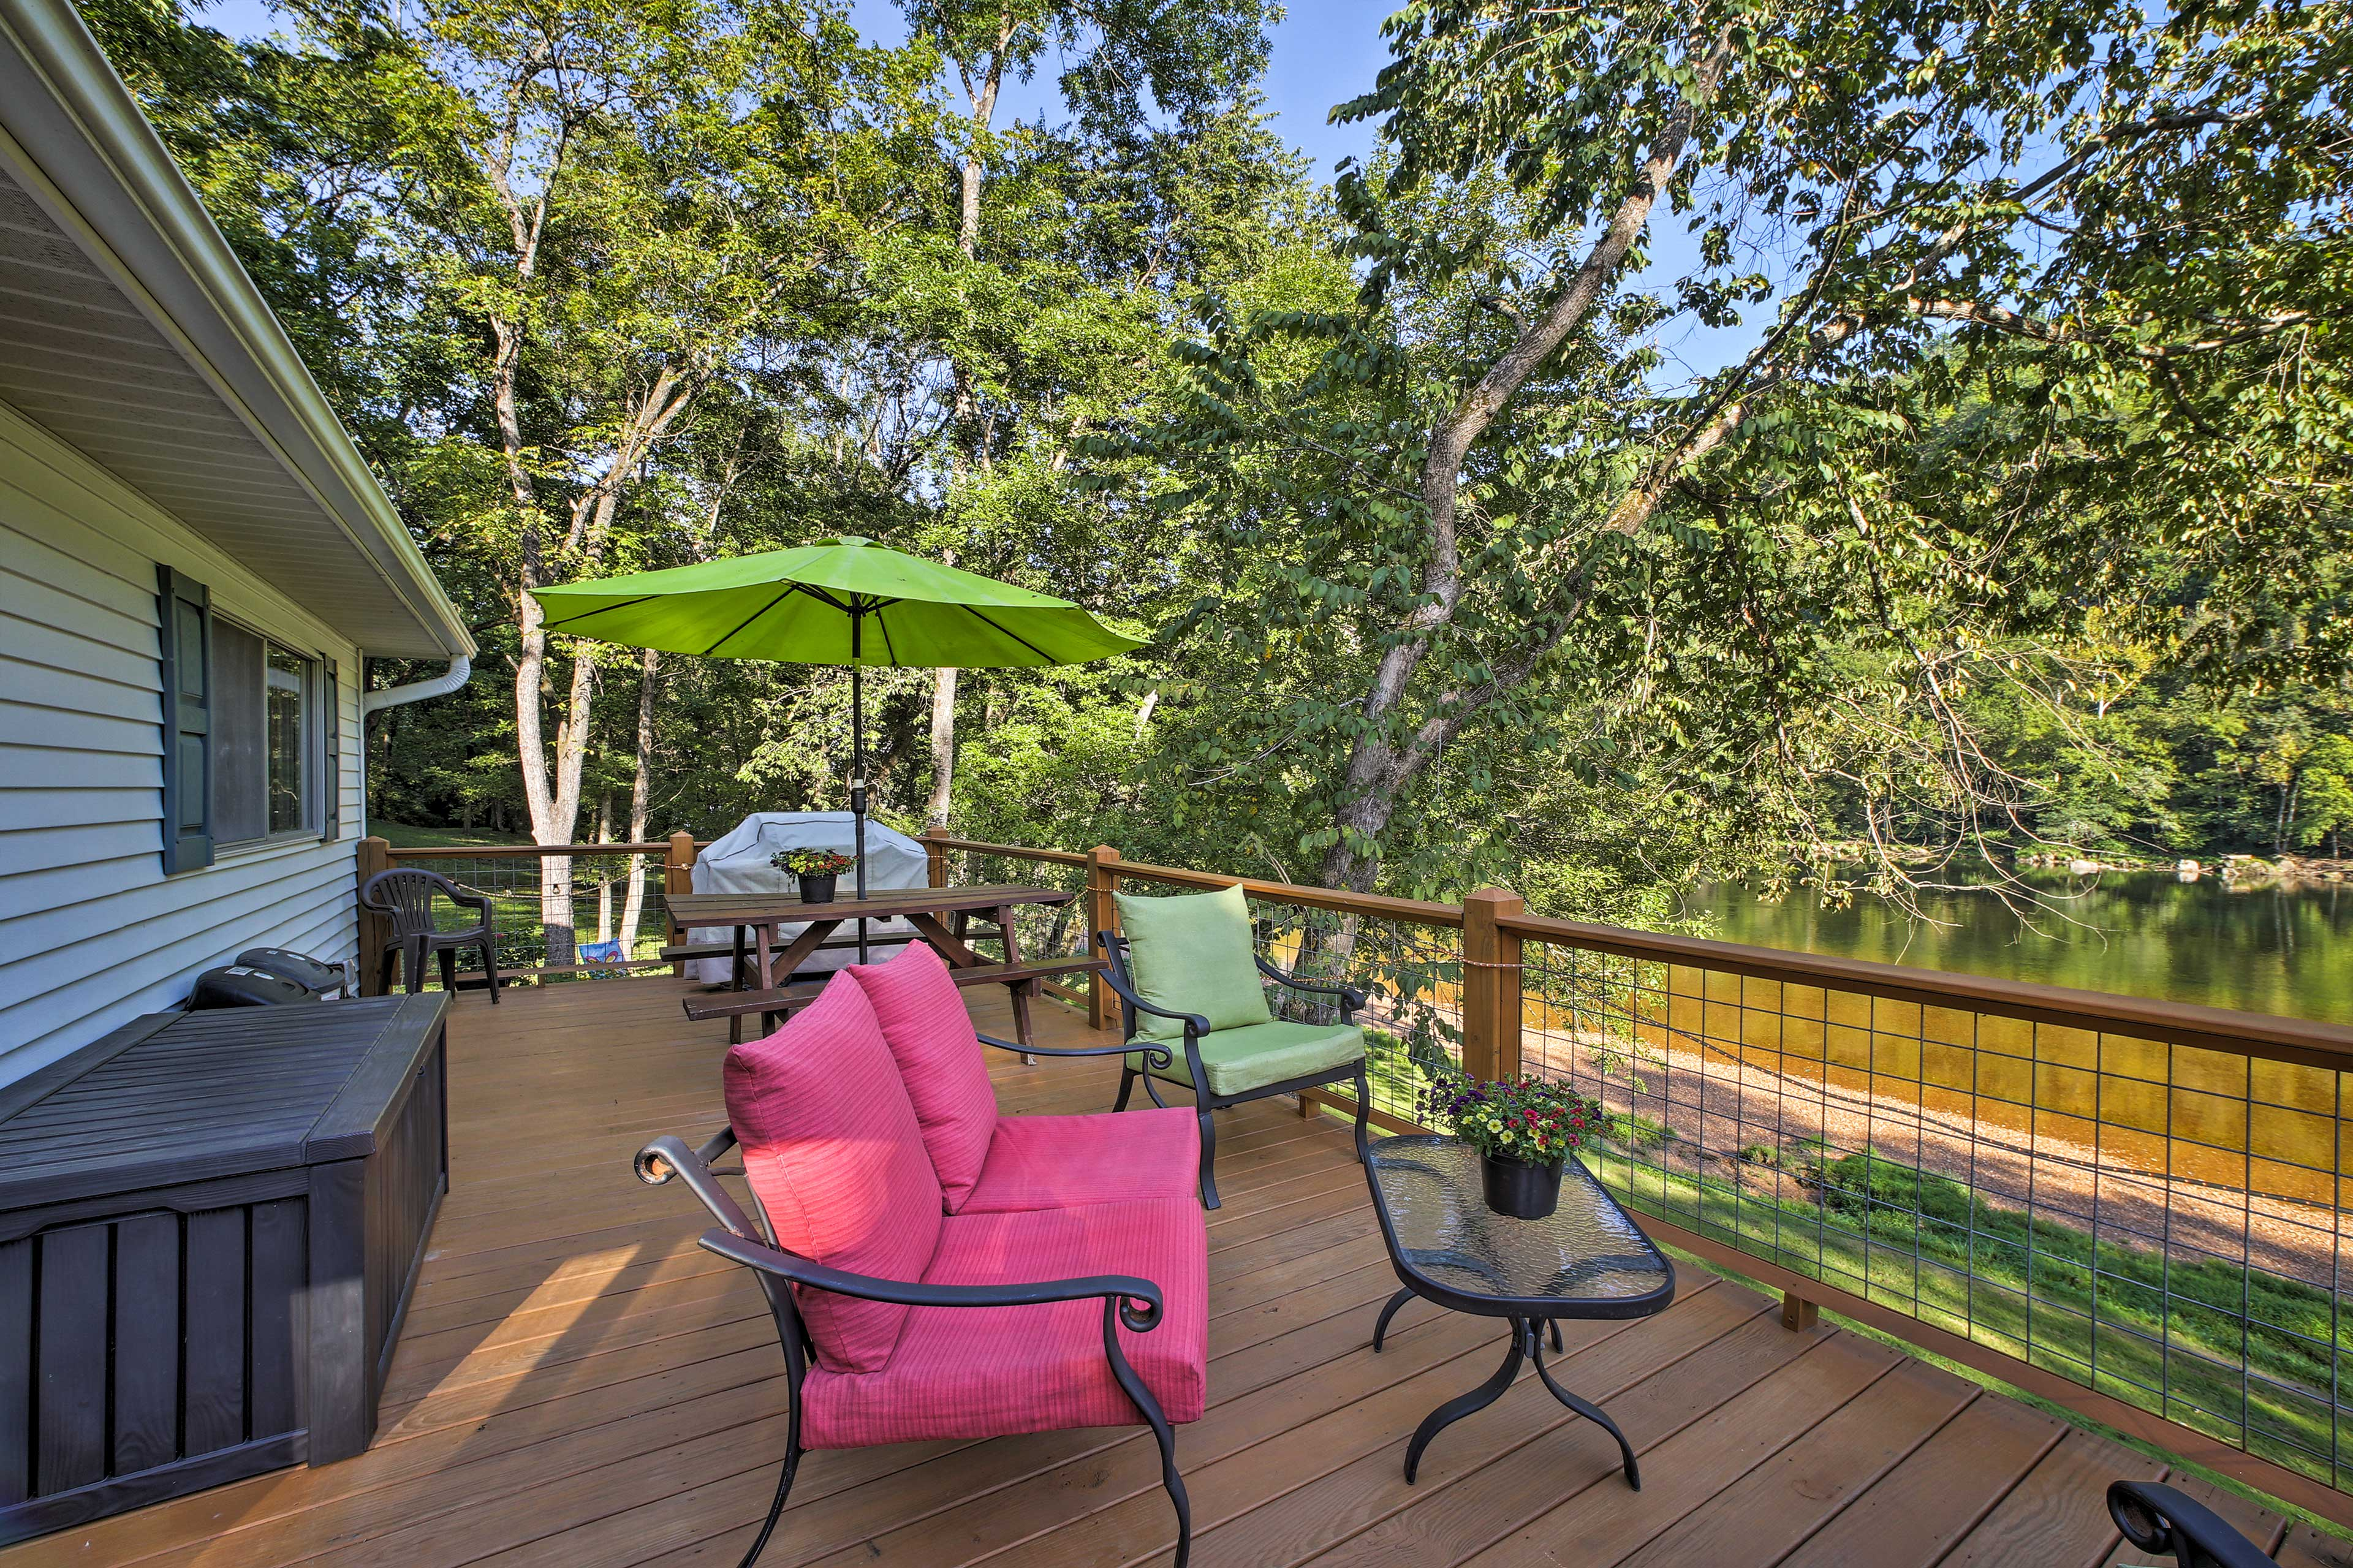 You'll absolutely love lounging on this expansive deck overlooking the river.